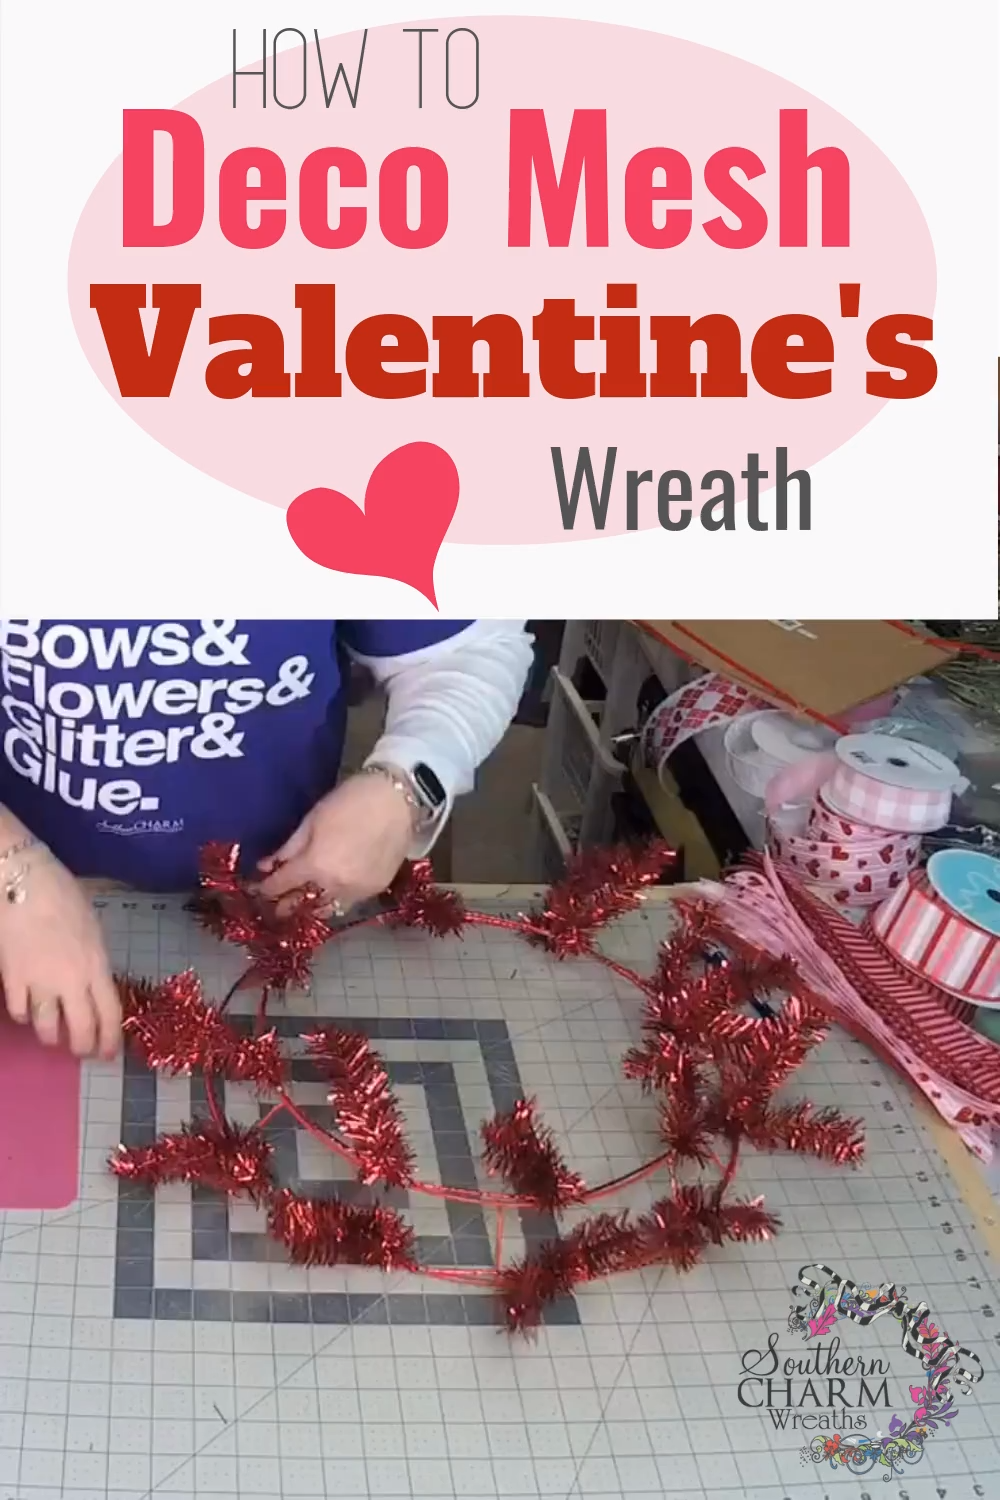 How to Make a Deco Mesh Valentine's Day Wreath